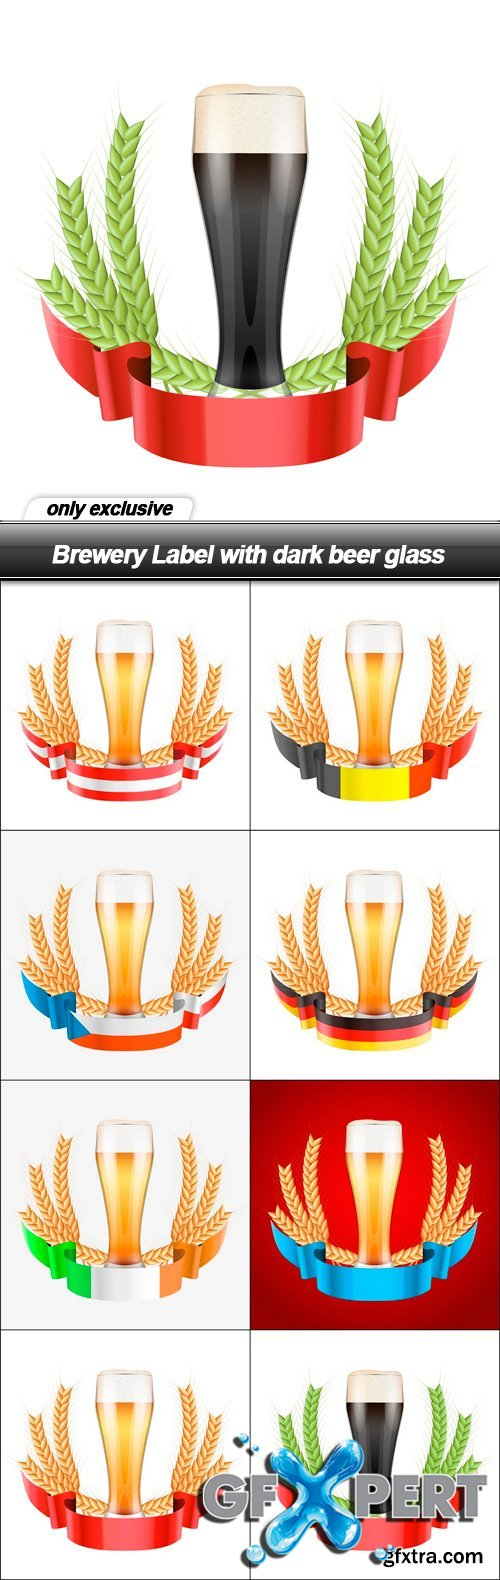 Brewery Label with dark beer glass - 8 EPS